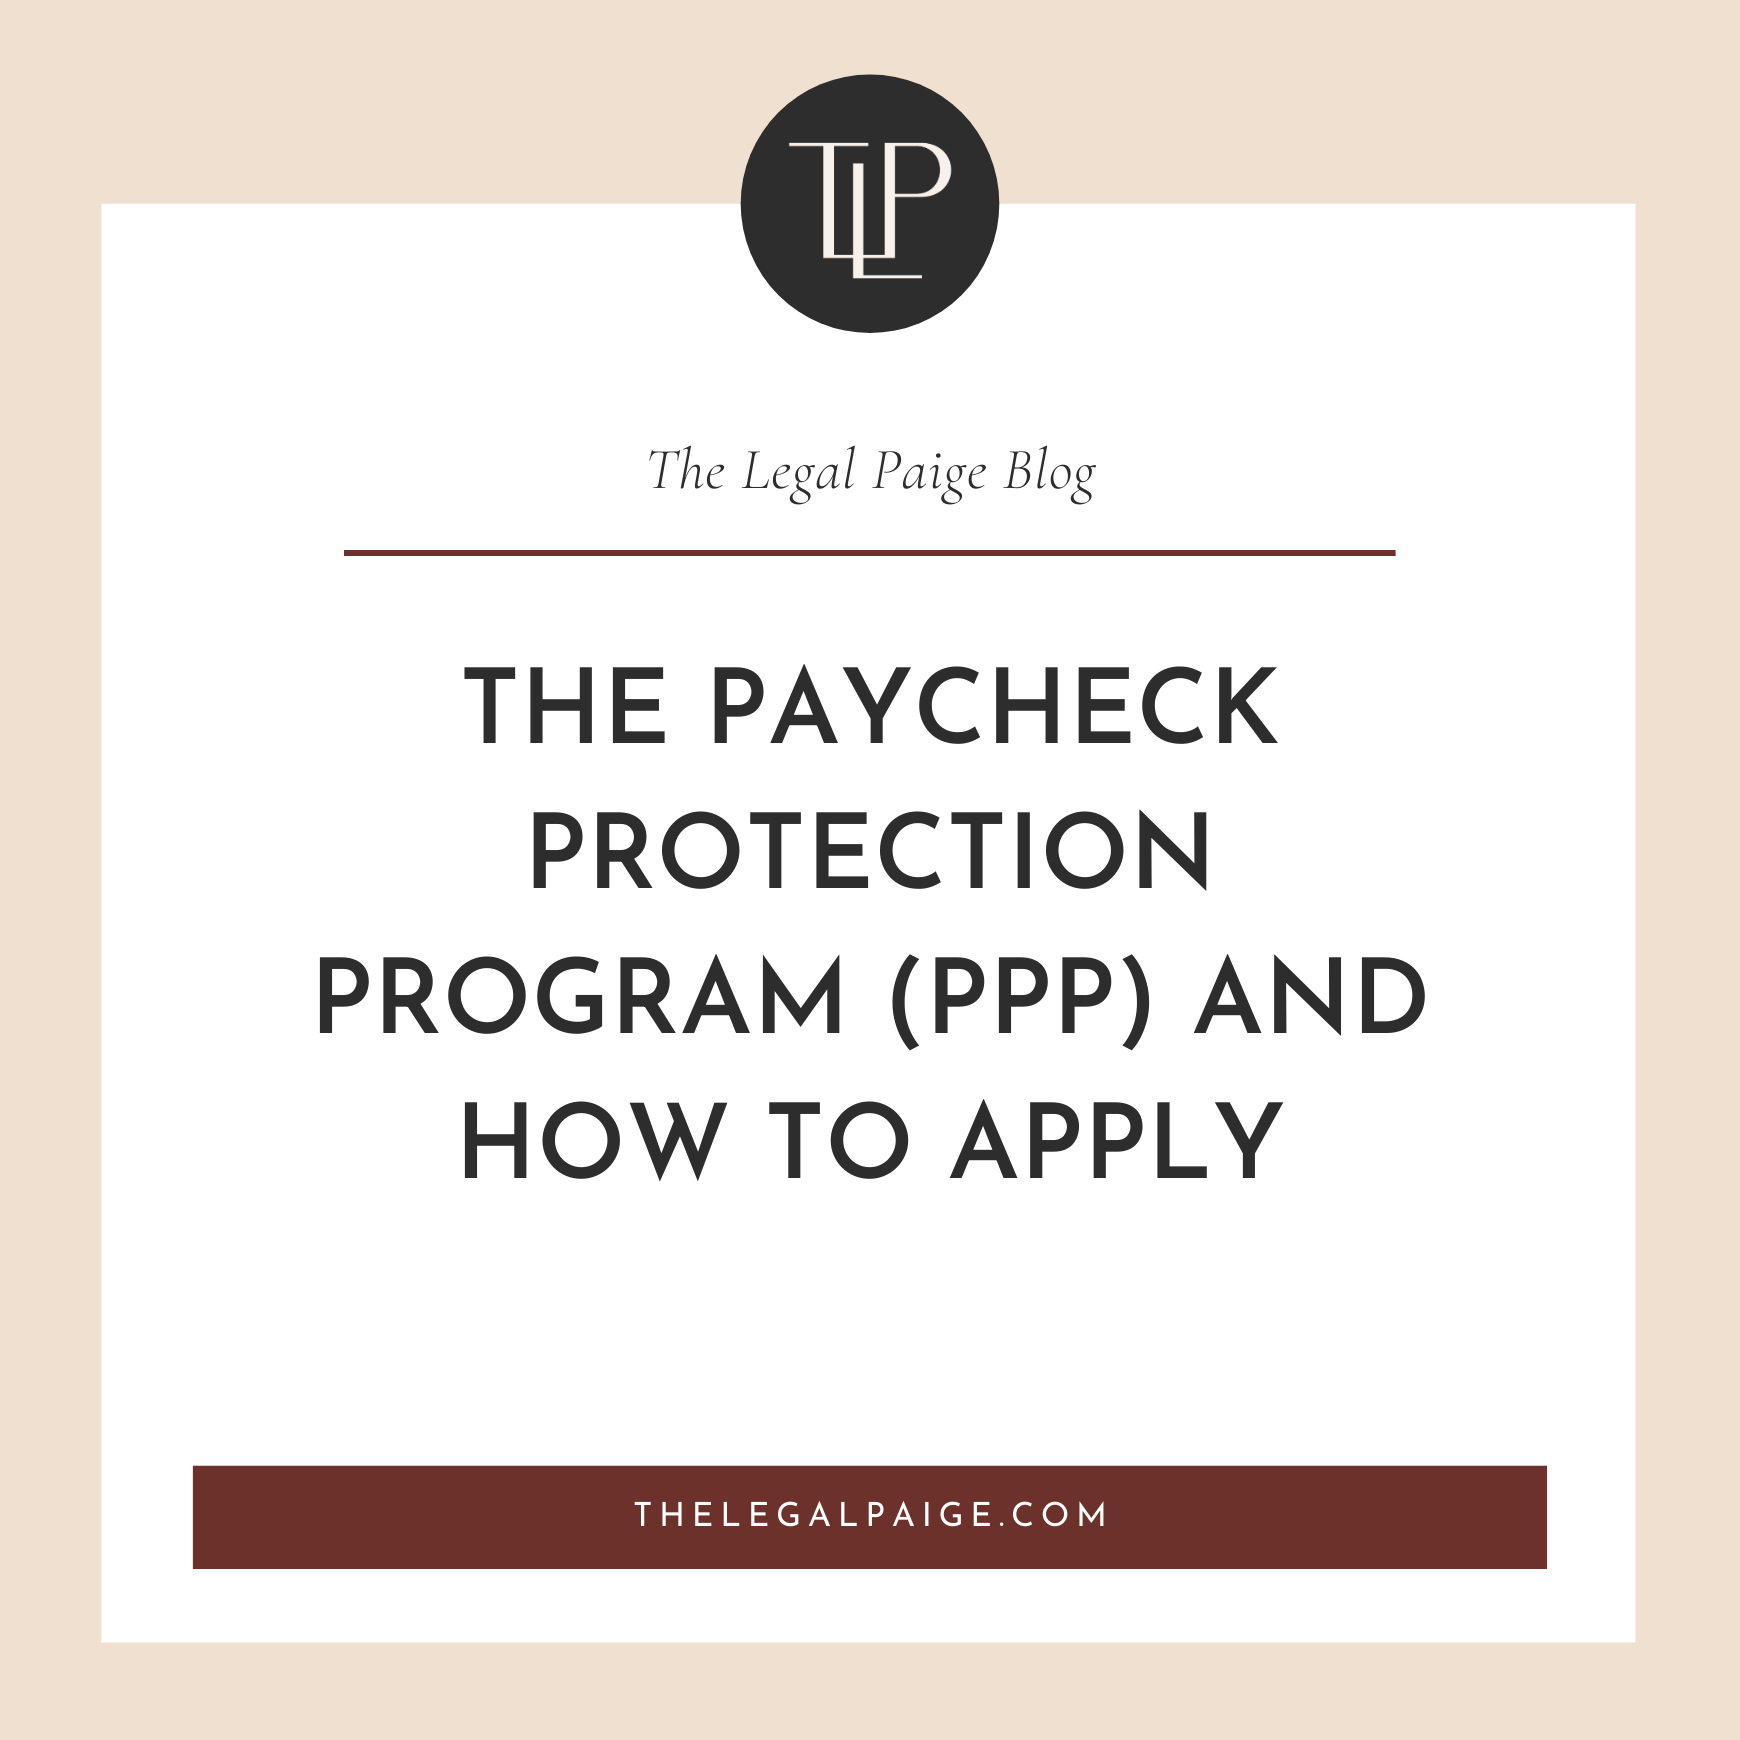 The Paycheck Protection Program (PPP) and How to Apply